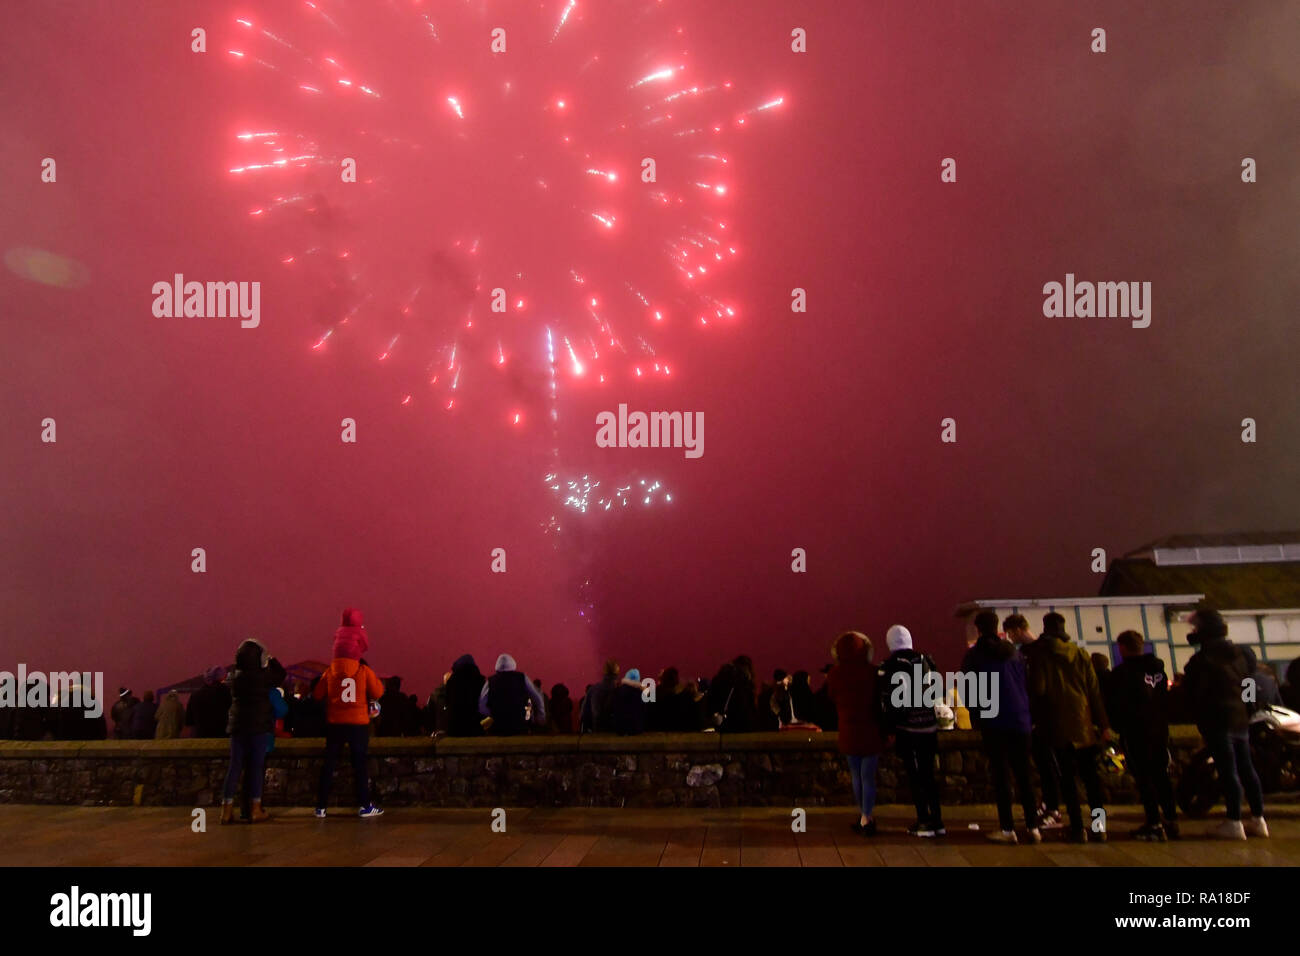 Weston-super-Mare, Somerset, UK. 29th December, 2018. On a damp and drizzly night hundreds of people turned out to a fantastic display of seafront fireworks. Robert Timoney/Alamy/Live/News Stock Photo